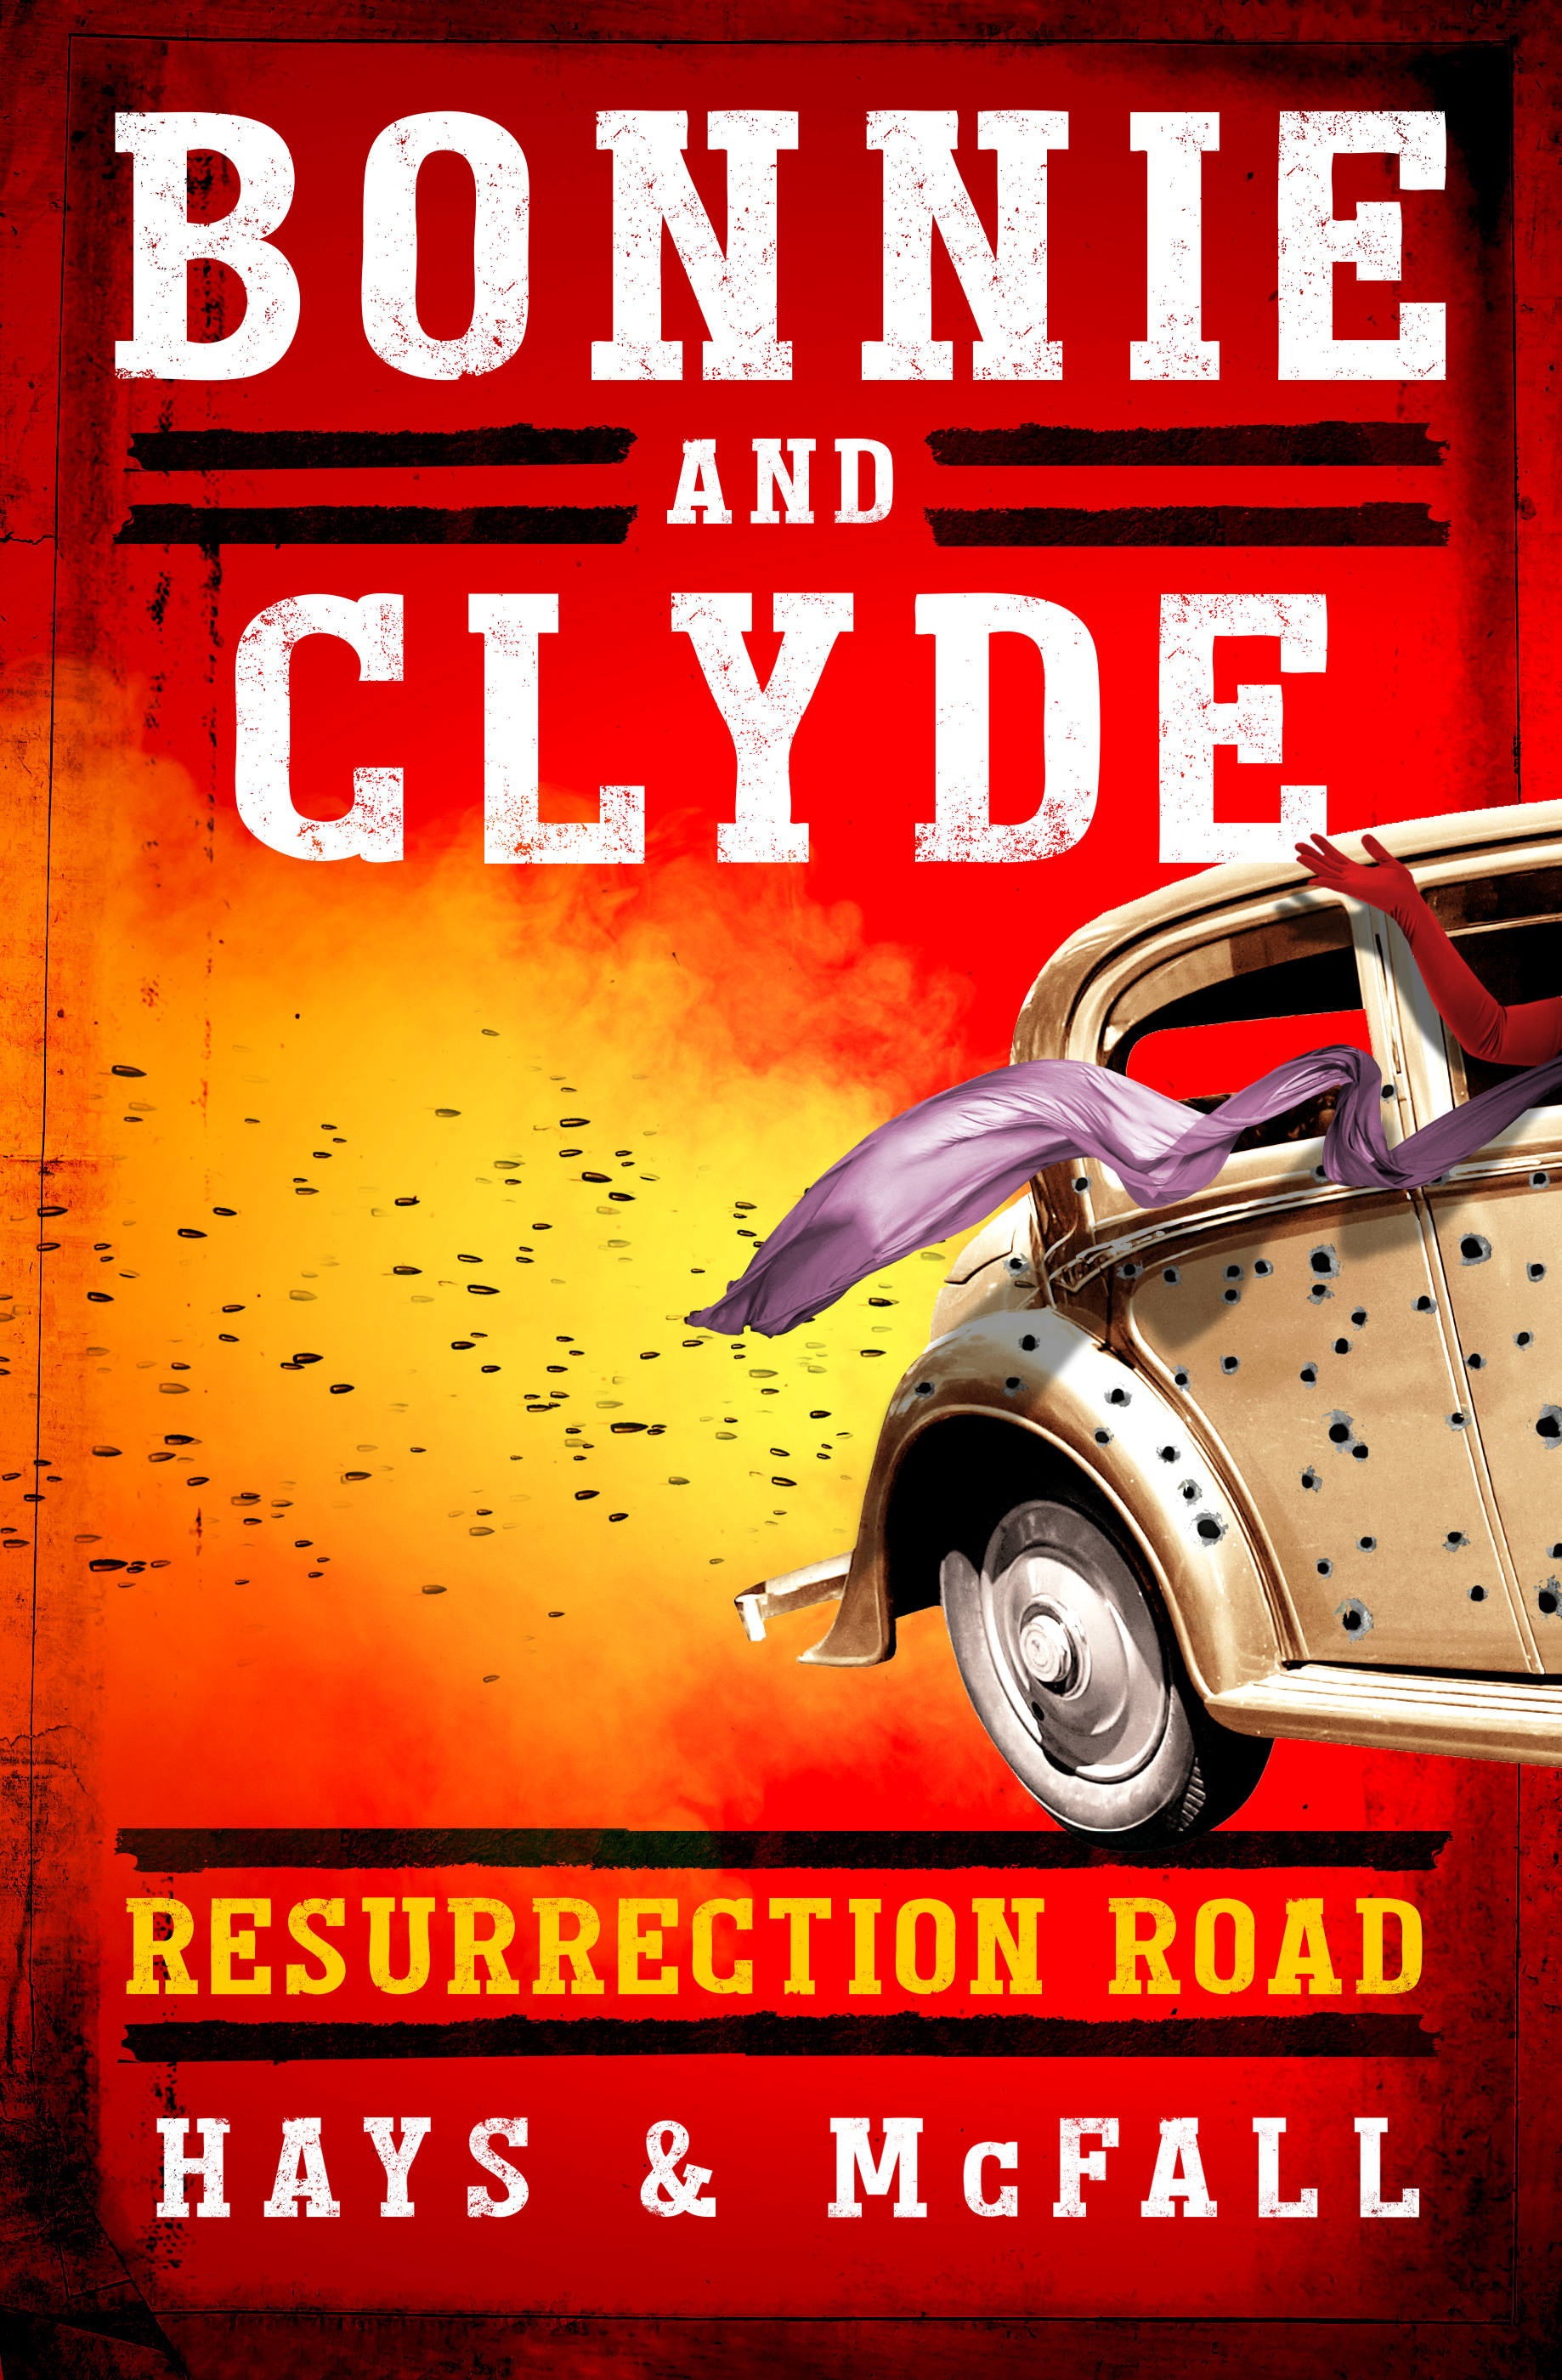 BonnieandClyde_Front Cover FINAL.jpg